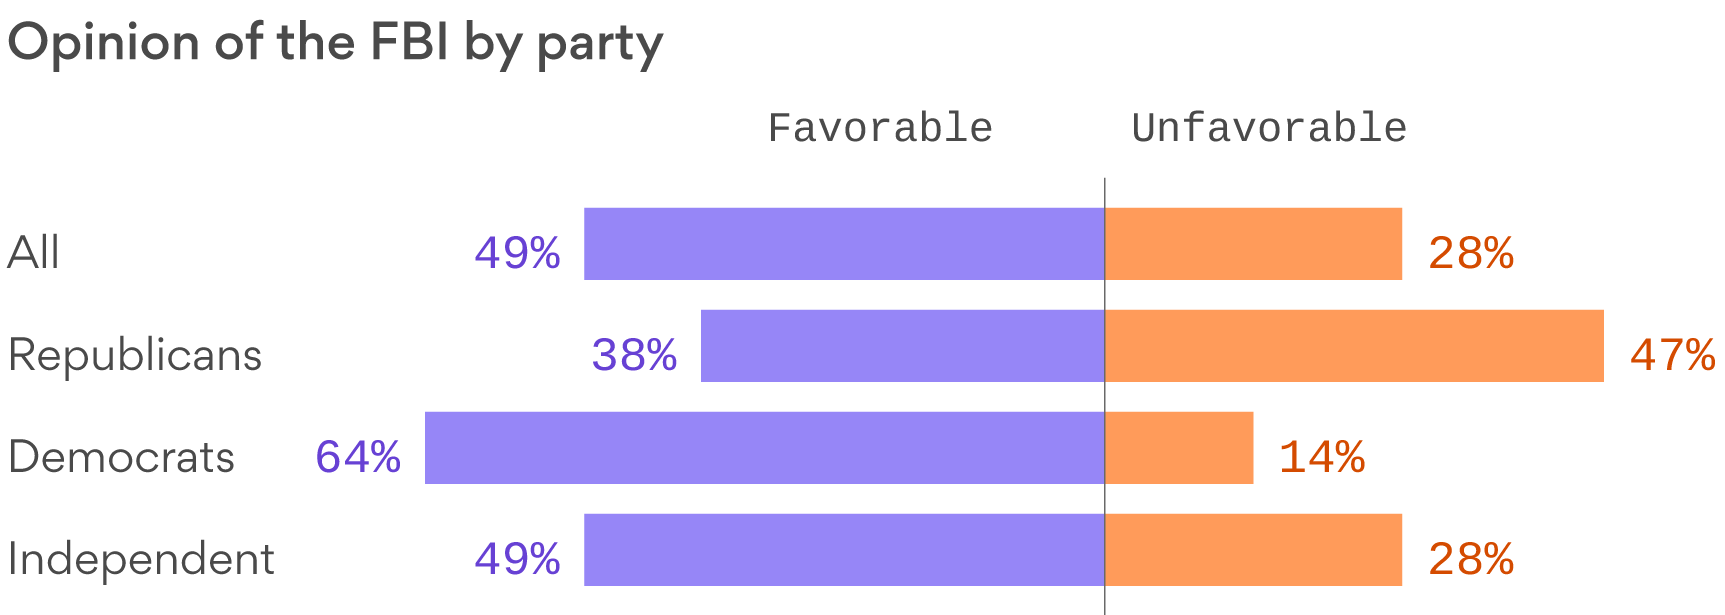 Opinion of the FBI by Party